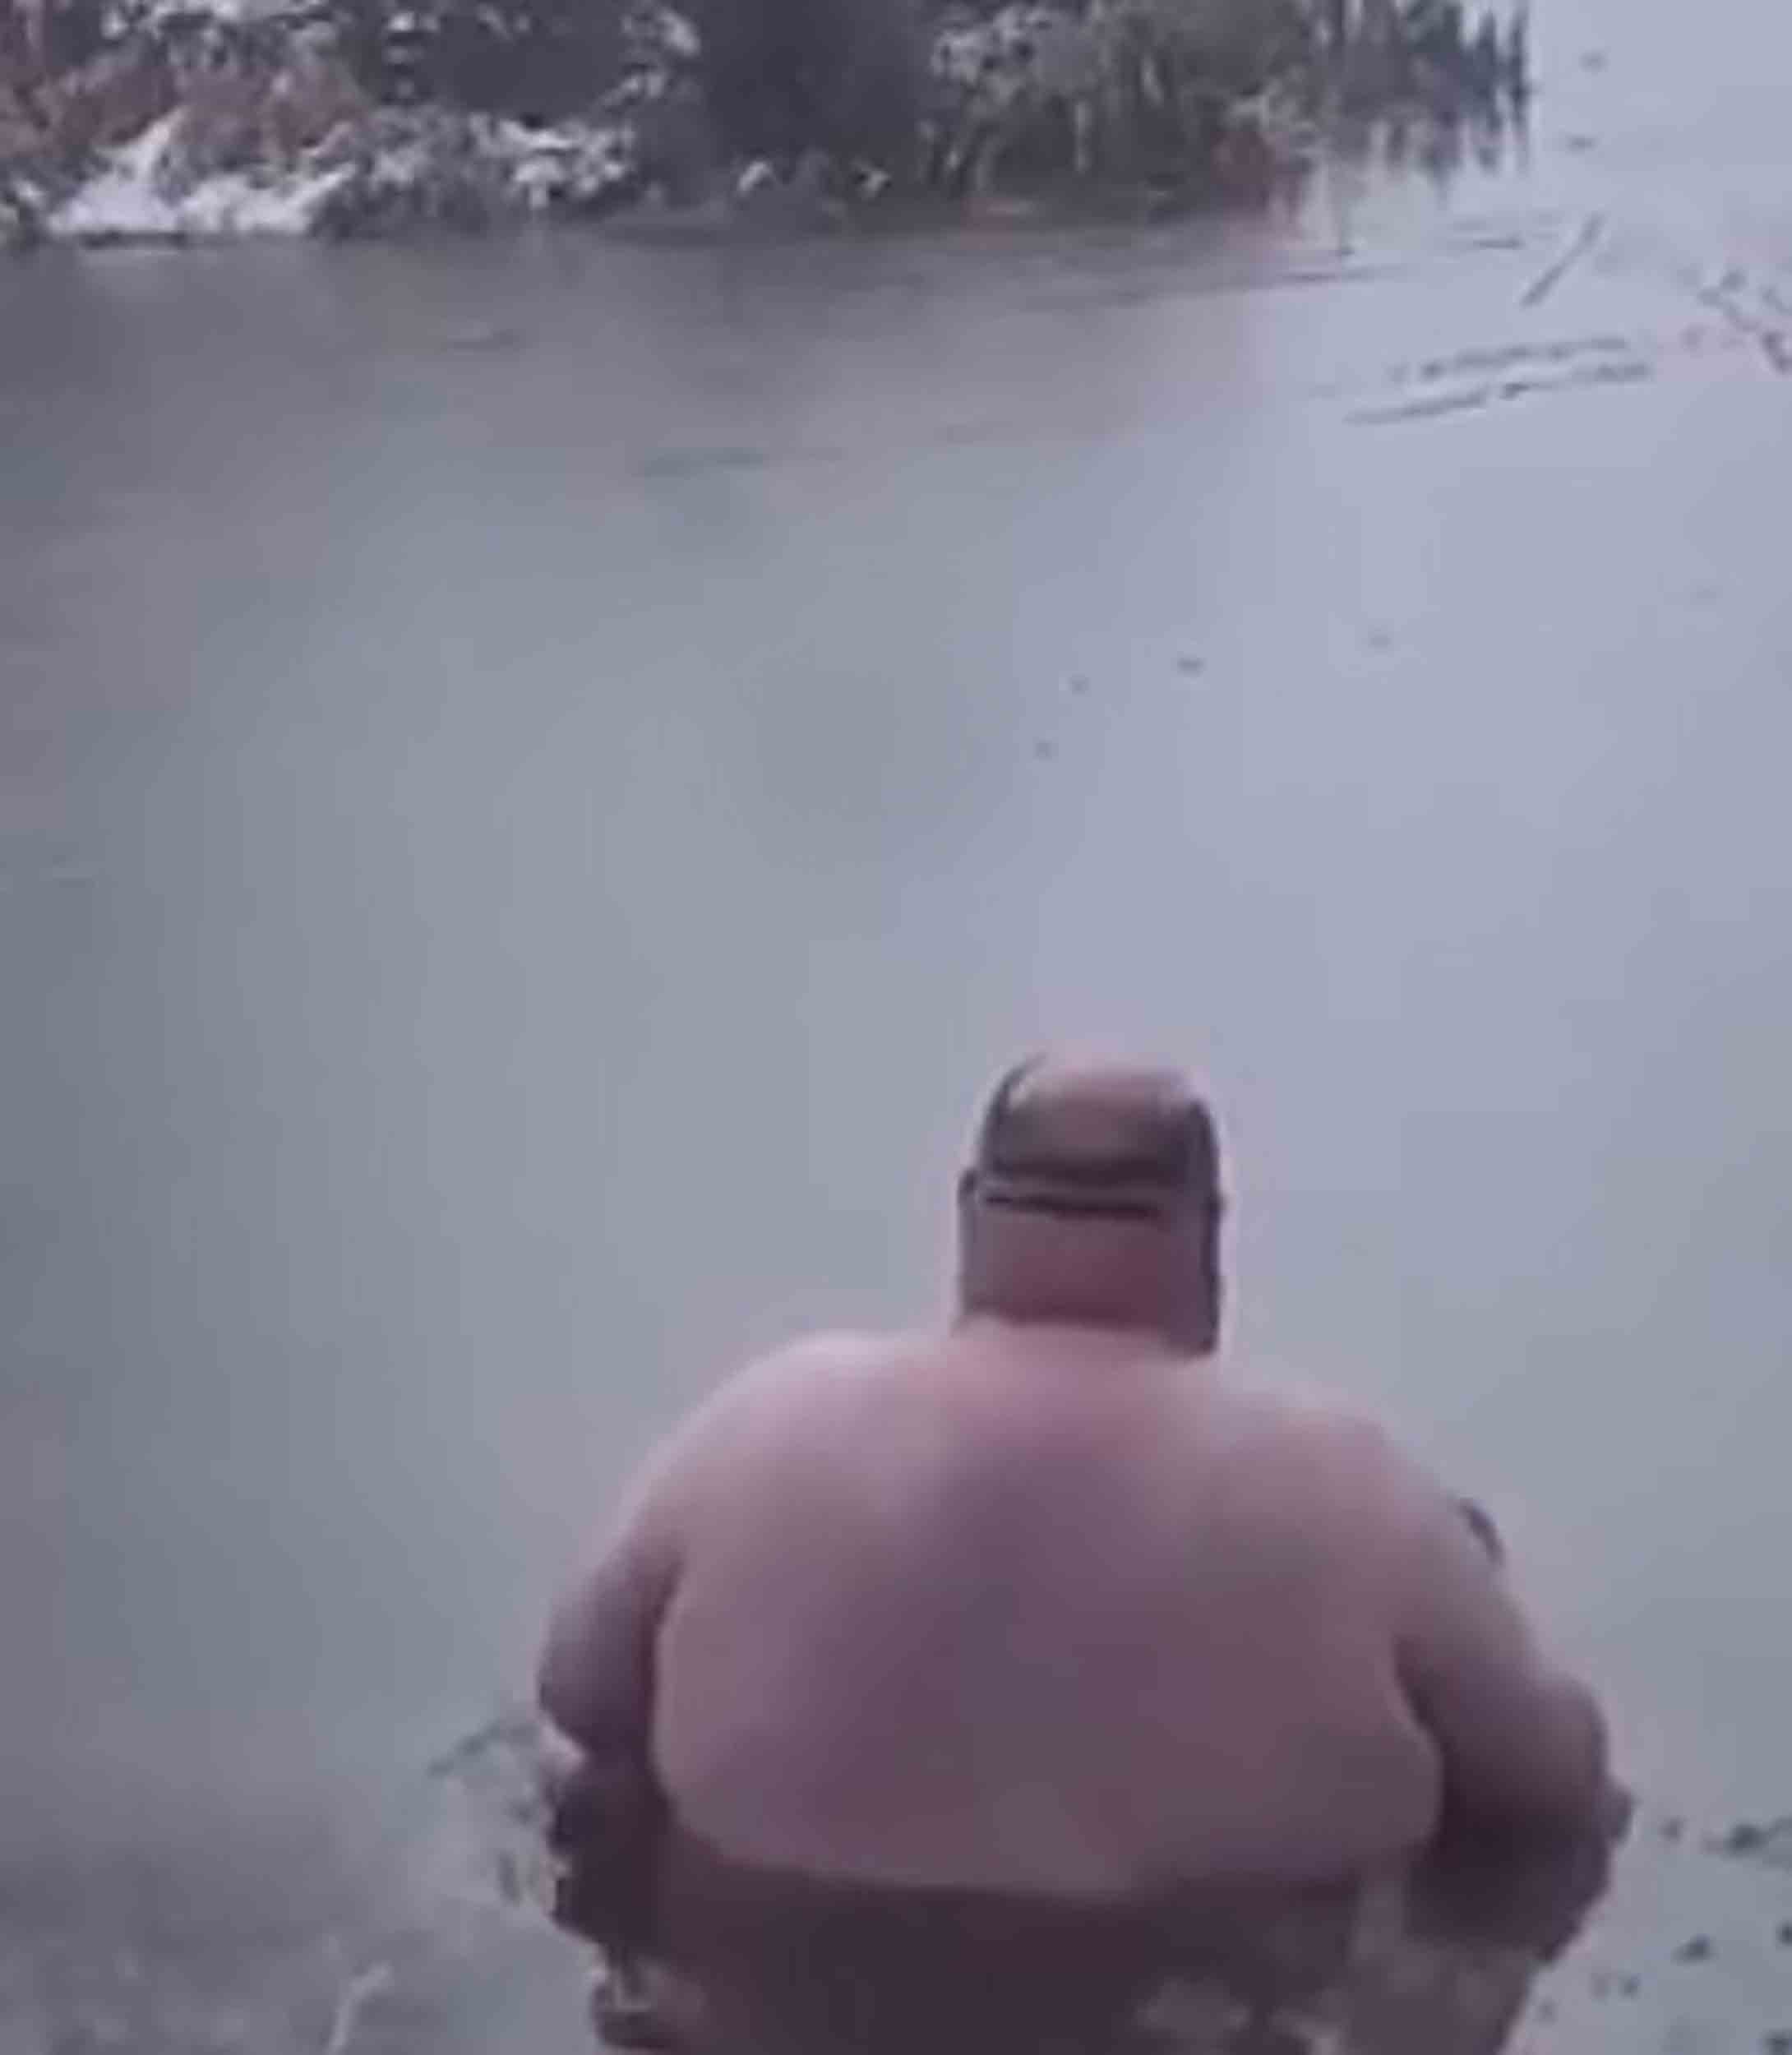 Man accepts £20 bet to wade through water and untangle fishing line - Viral Video News UK